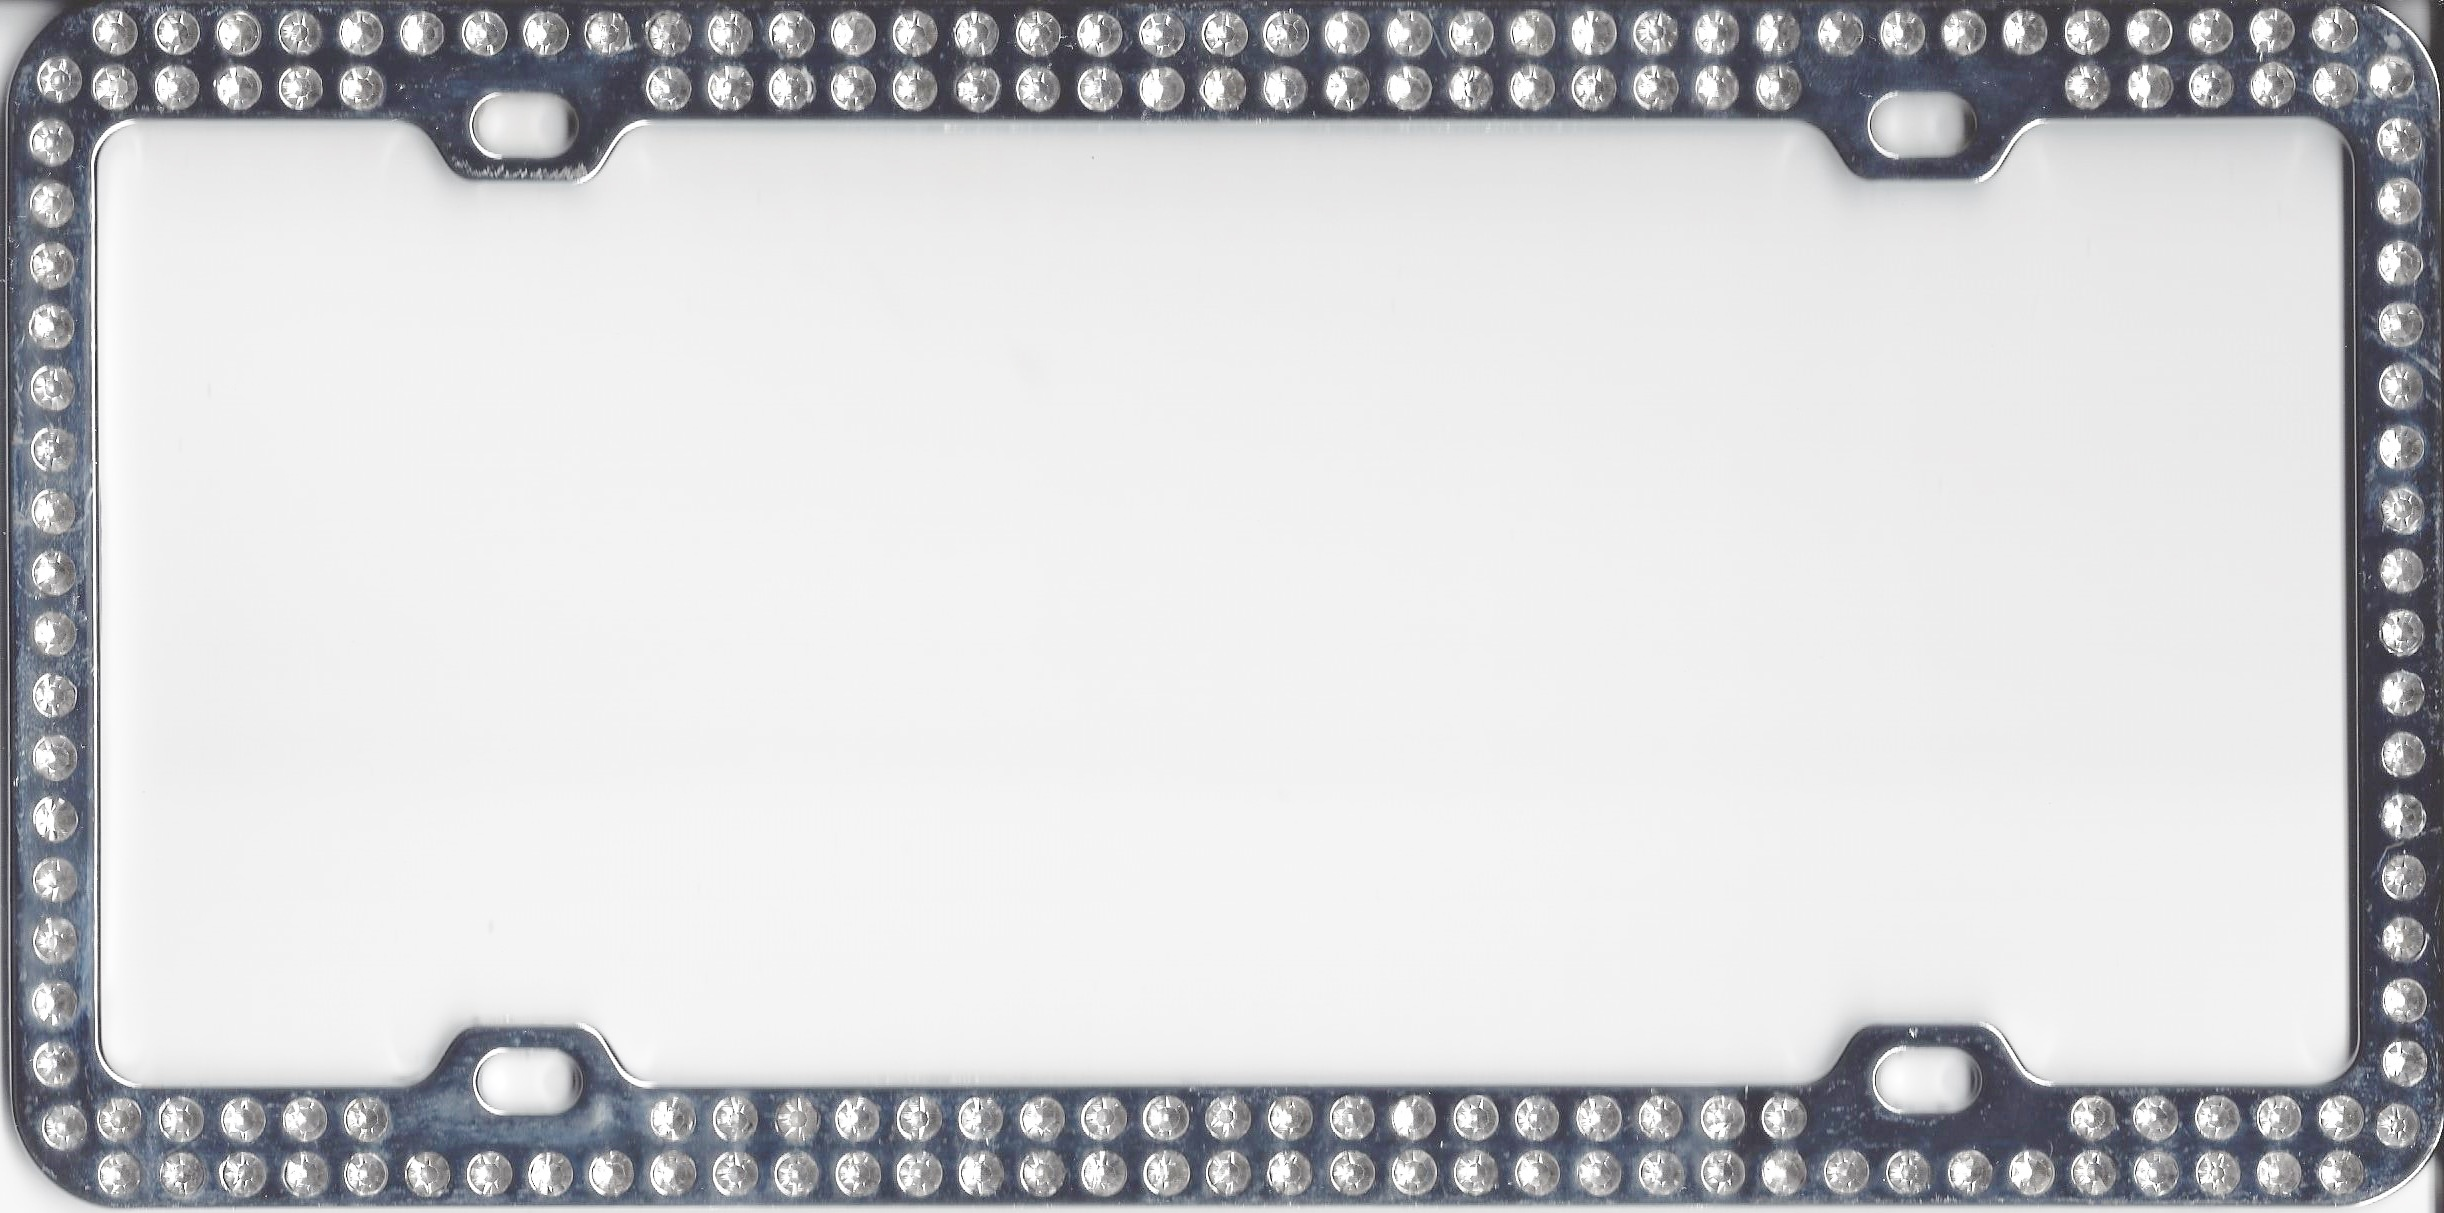 Chrome With Double Rows of Diamond License Plate Frame  sc 1 st  Auto License Plates and Frames & Chrome With Double Rows of Diamond License Plate Frame Chrome With ...